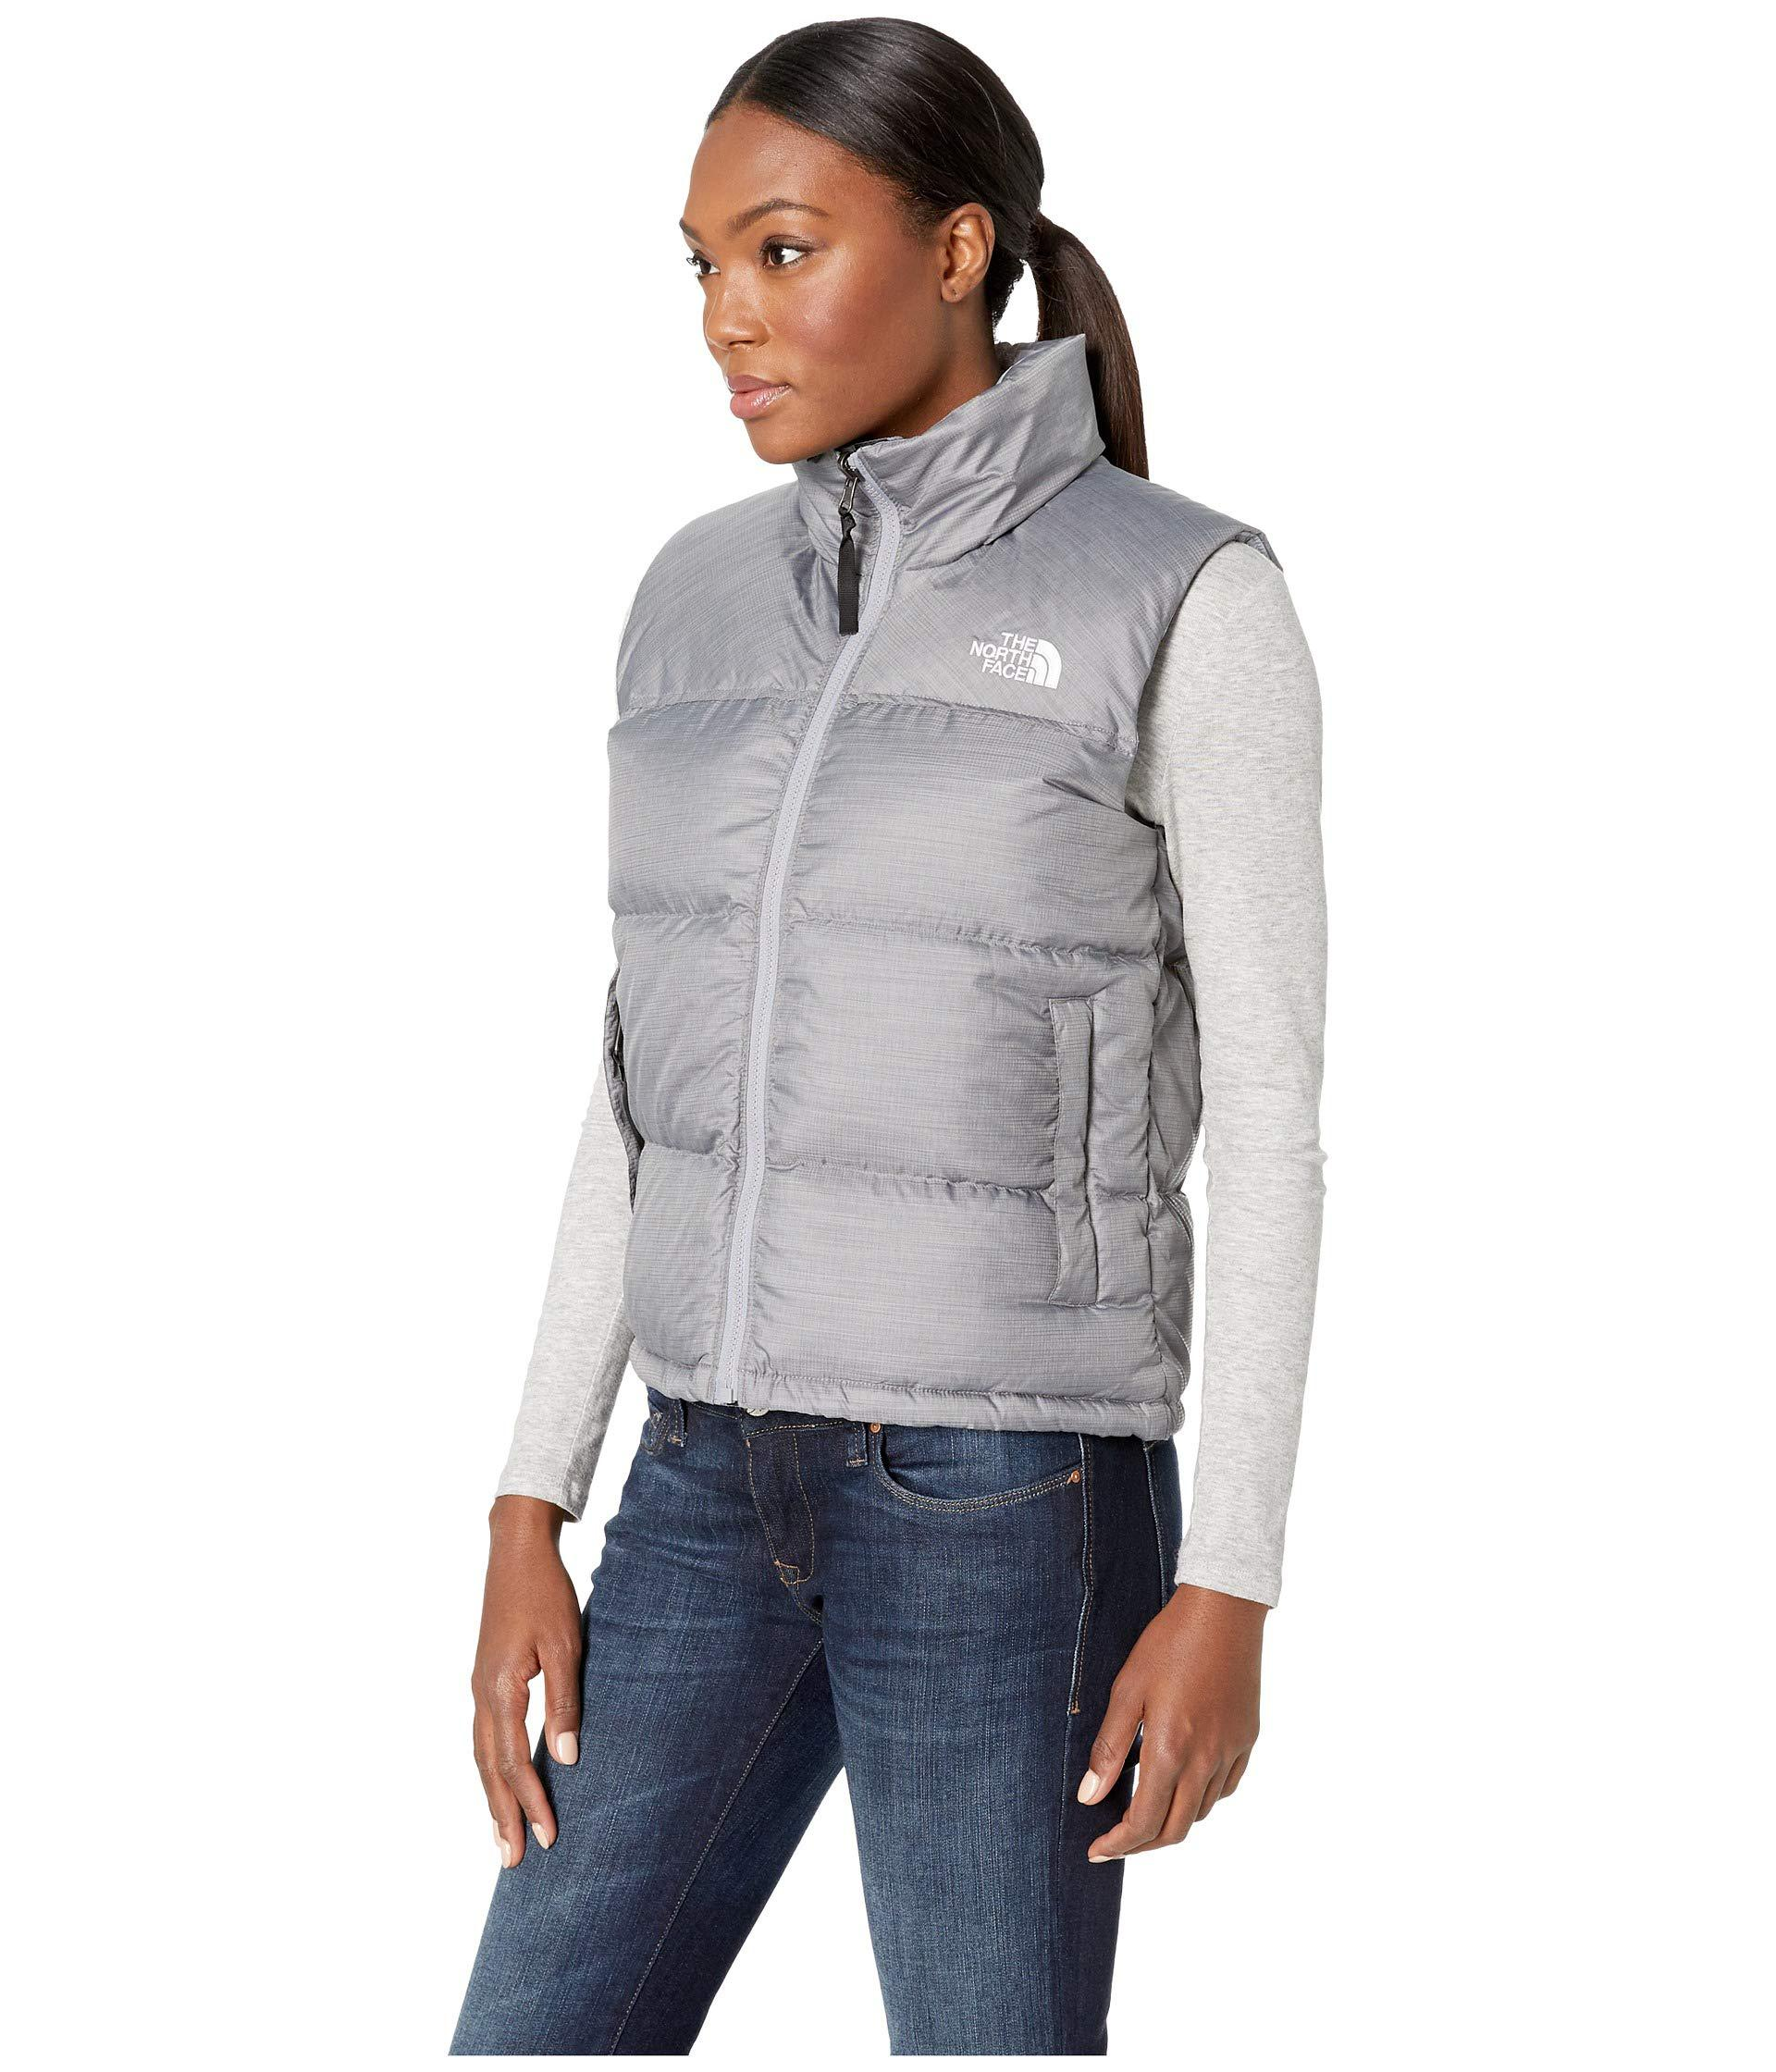 Lyst - The North Face 1996 Retro Nuptse Vest (tumbleweed Green) Women s Vest  in Gray b7f1fb832